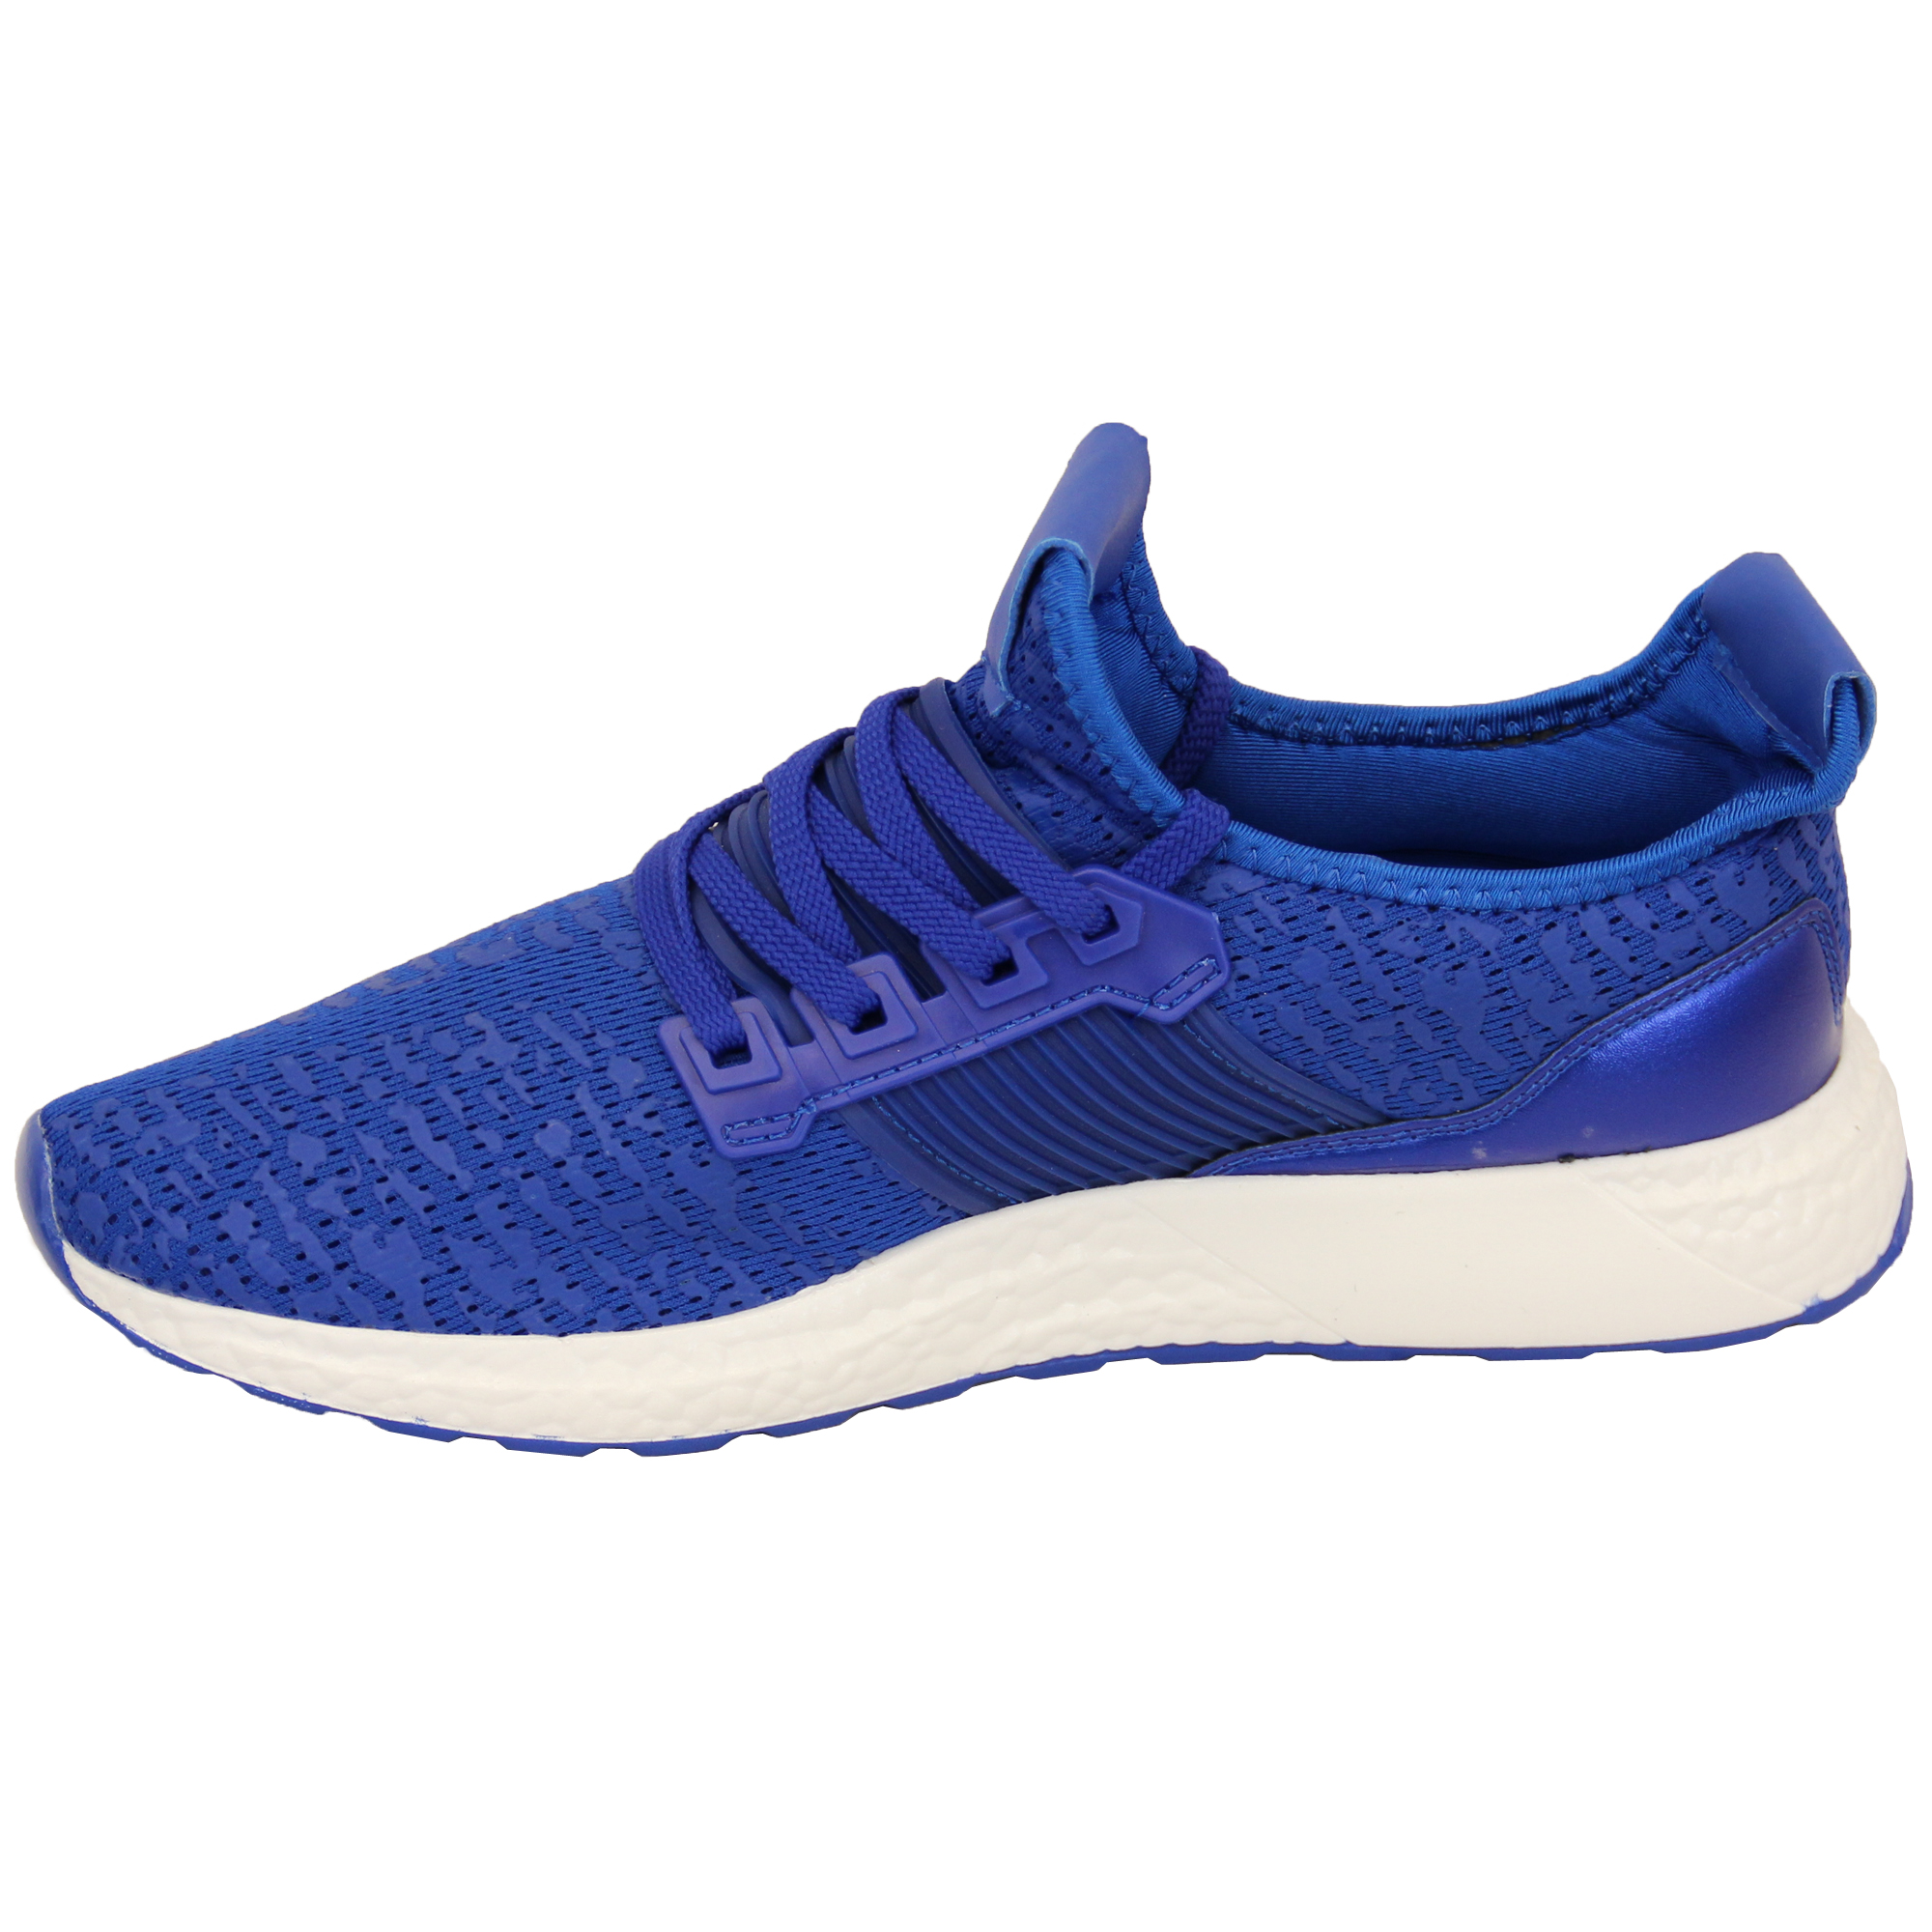 Mens-Trainers-Shoes-Lace-Up-Running-Gym-Sports-Mesh-Casual-Summer-Fashion-New thumbnail 9